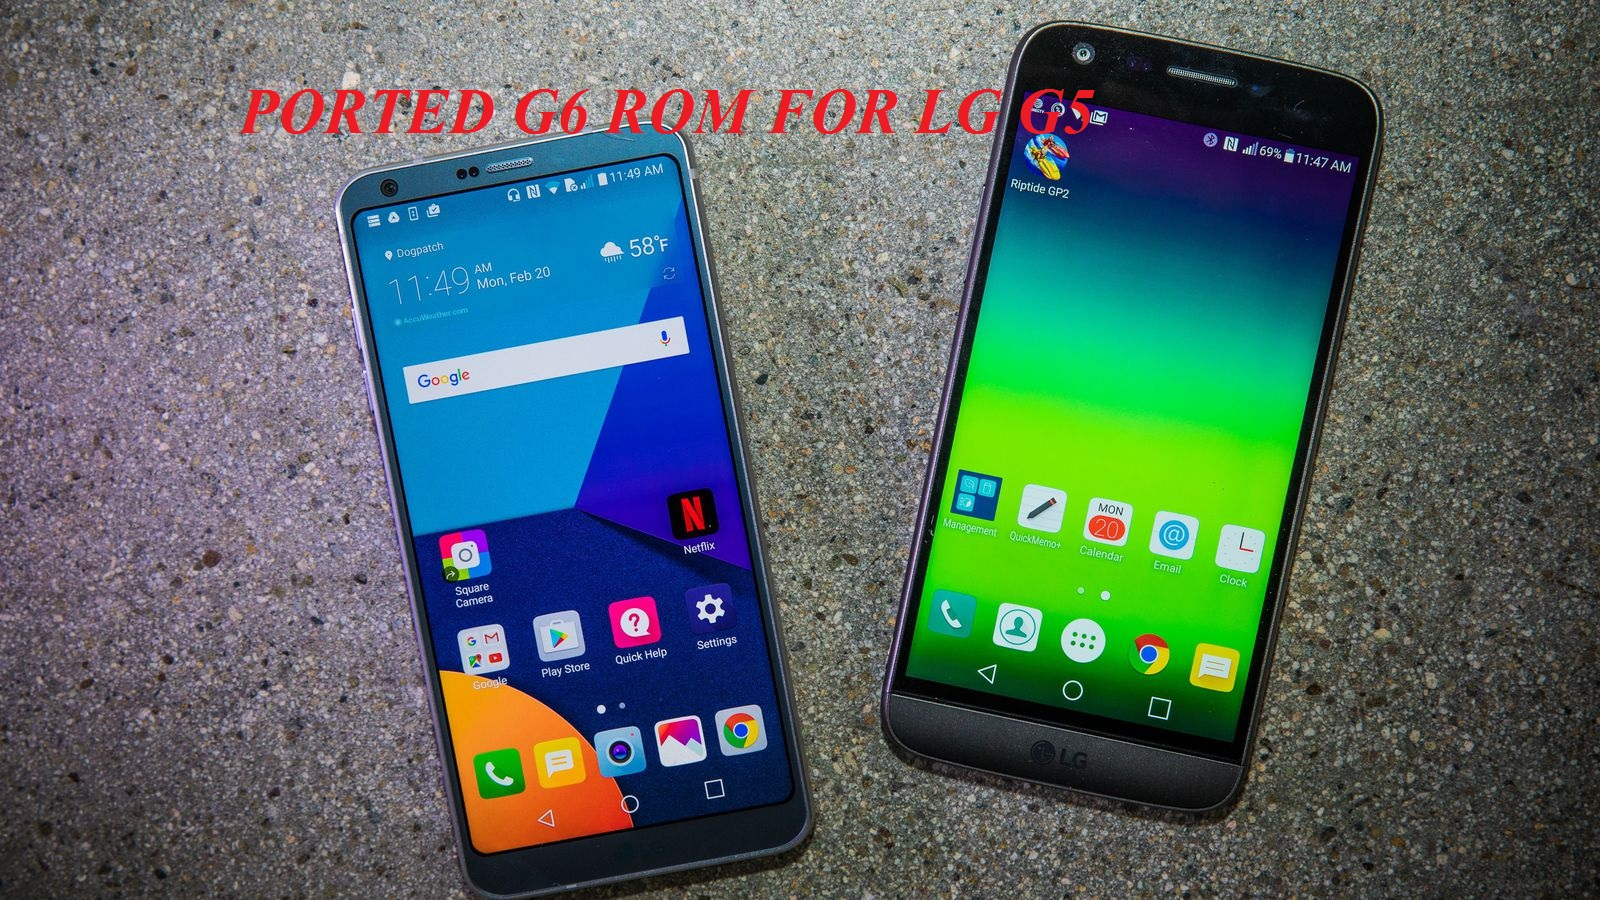 Ported G6 UX 6 0 ROM For LG G5 - TechZai